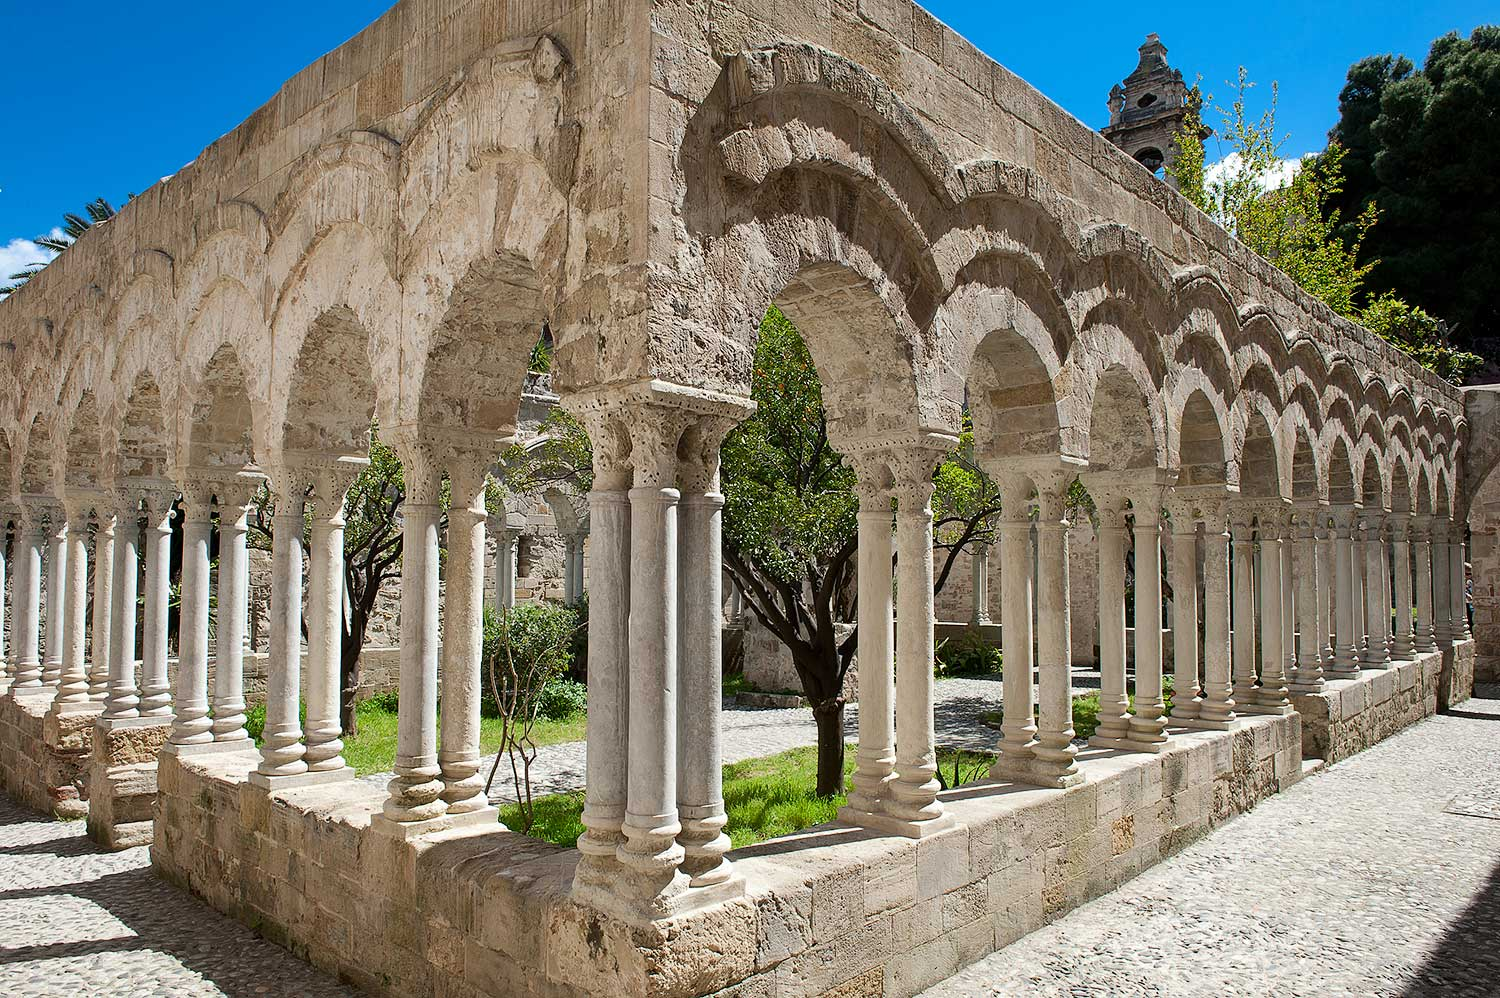 The cloister with double columns